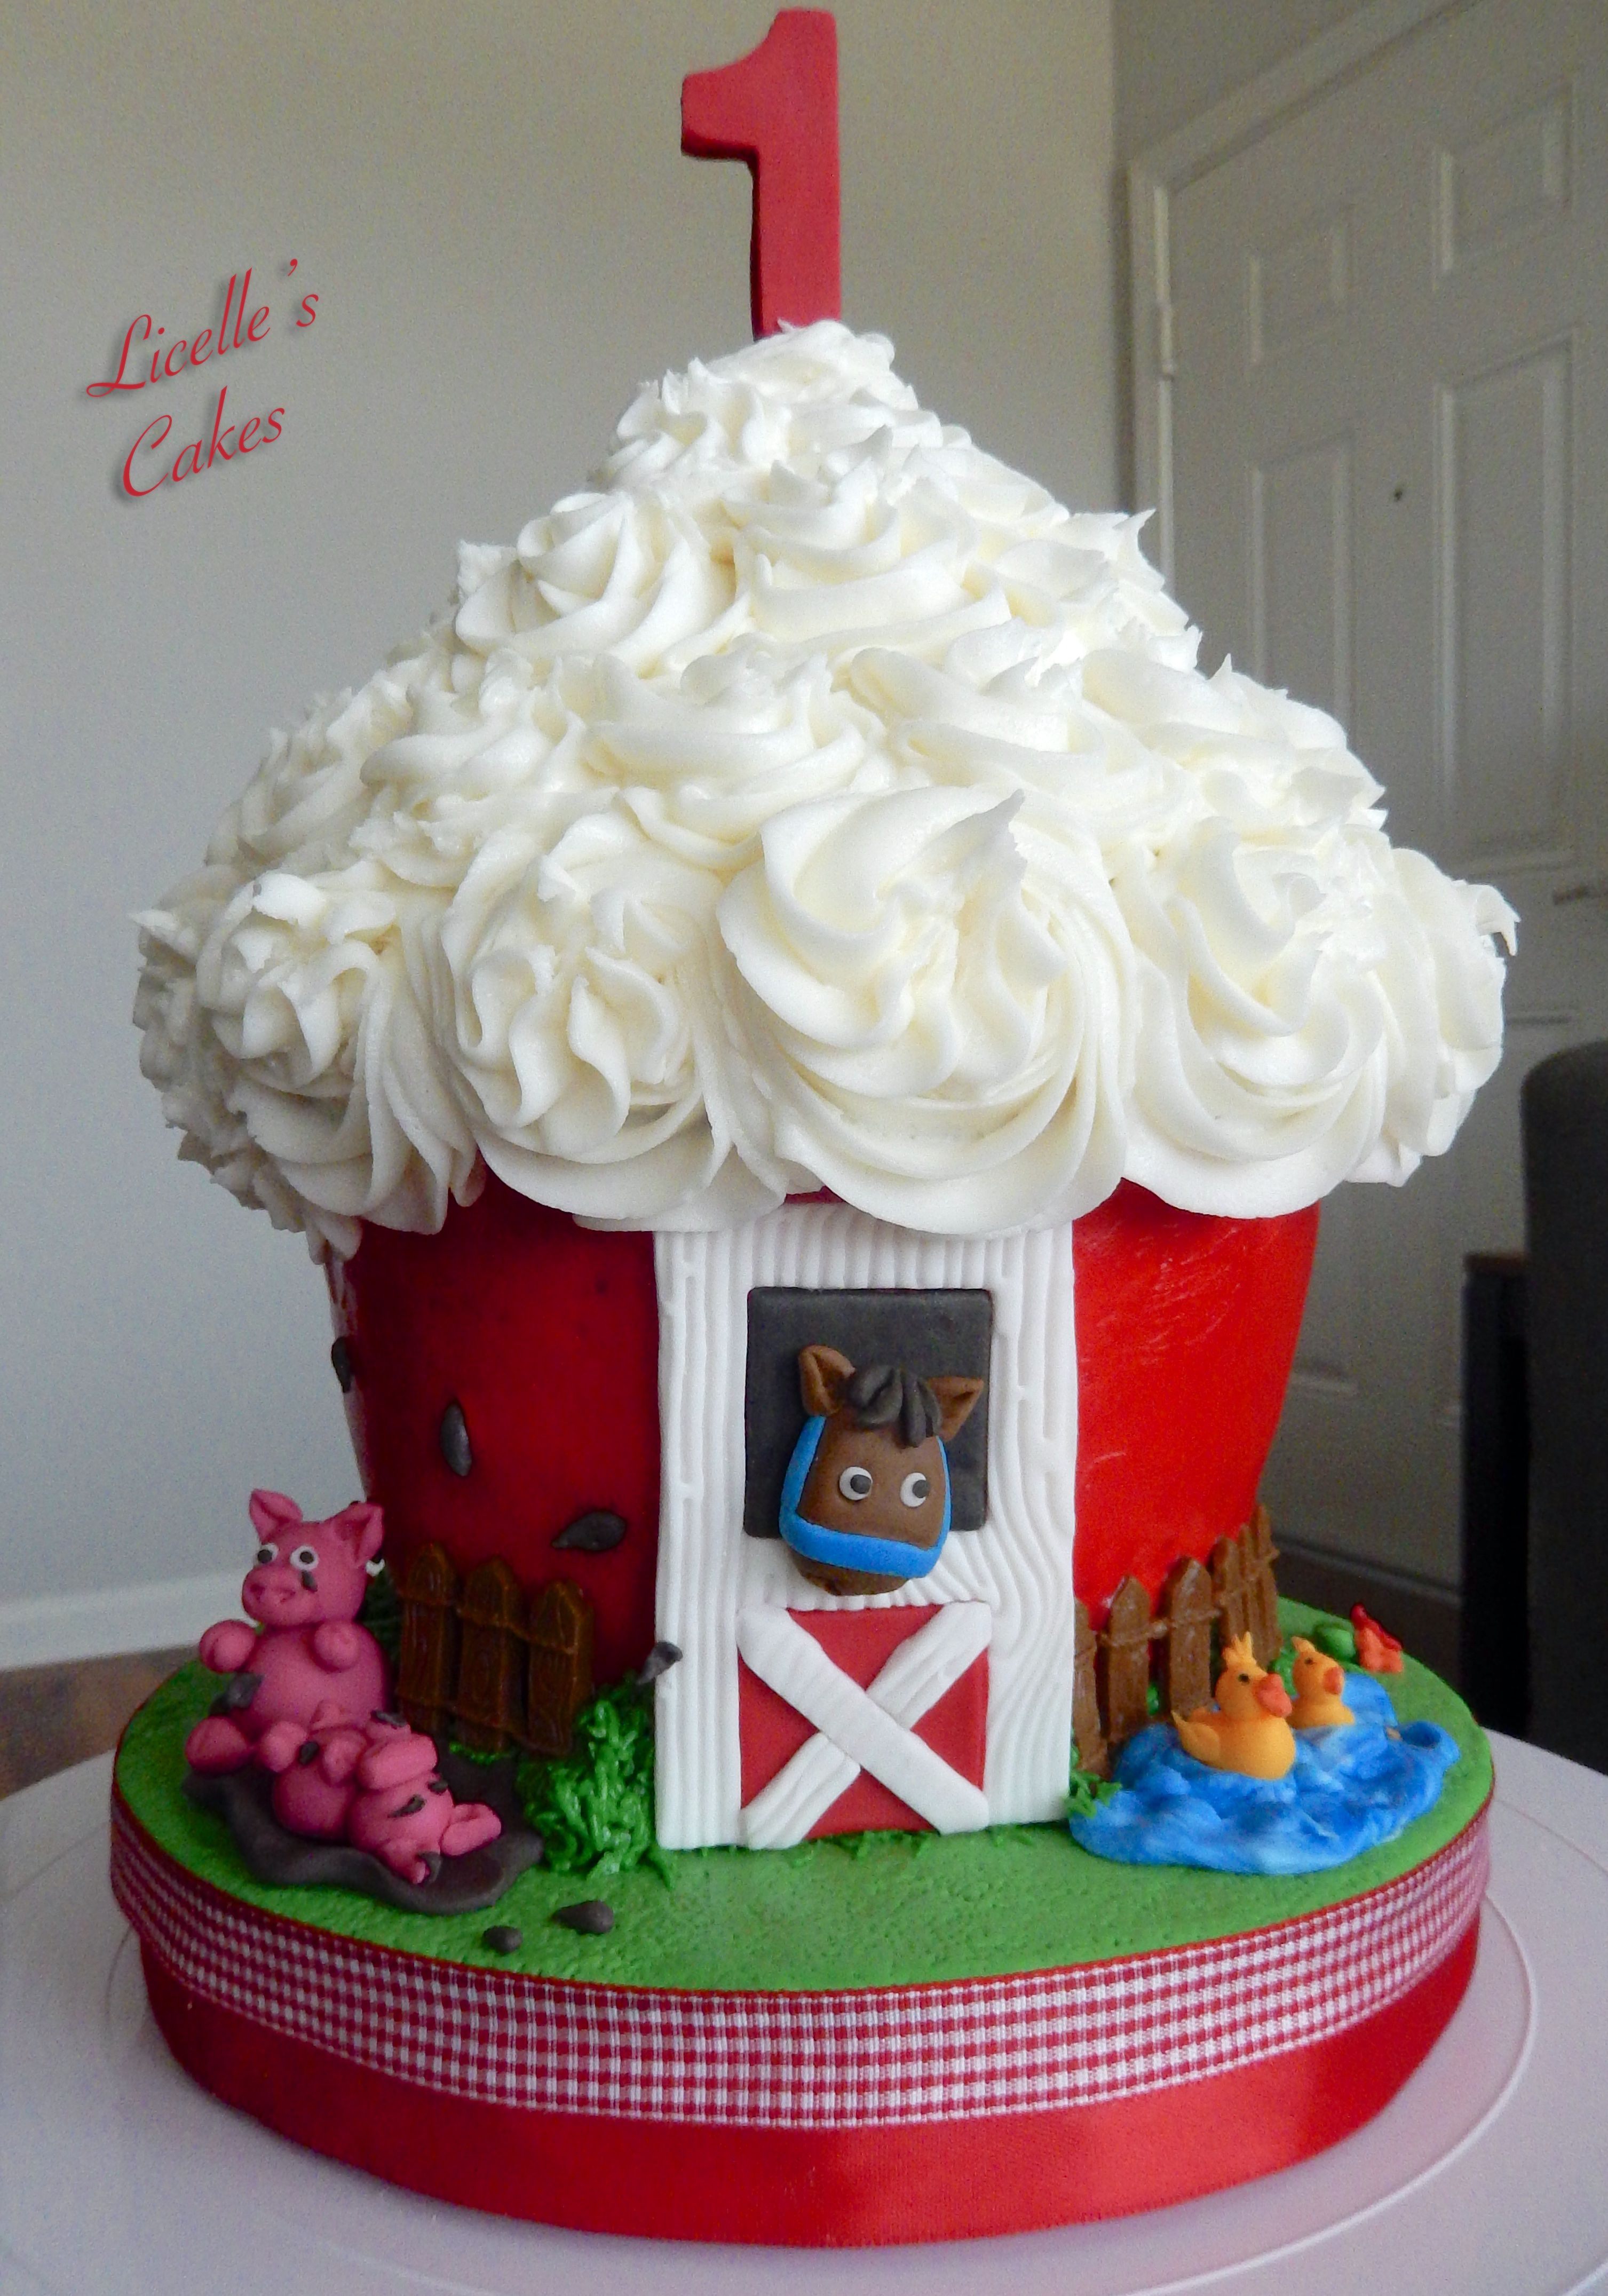 Giant Cupcake Red Barn Smash Cake With A Few Fondant Animal Farm